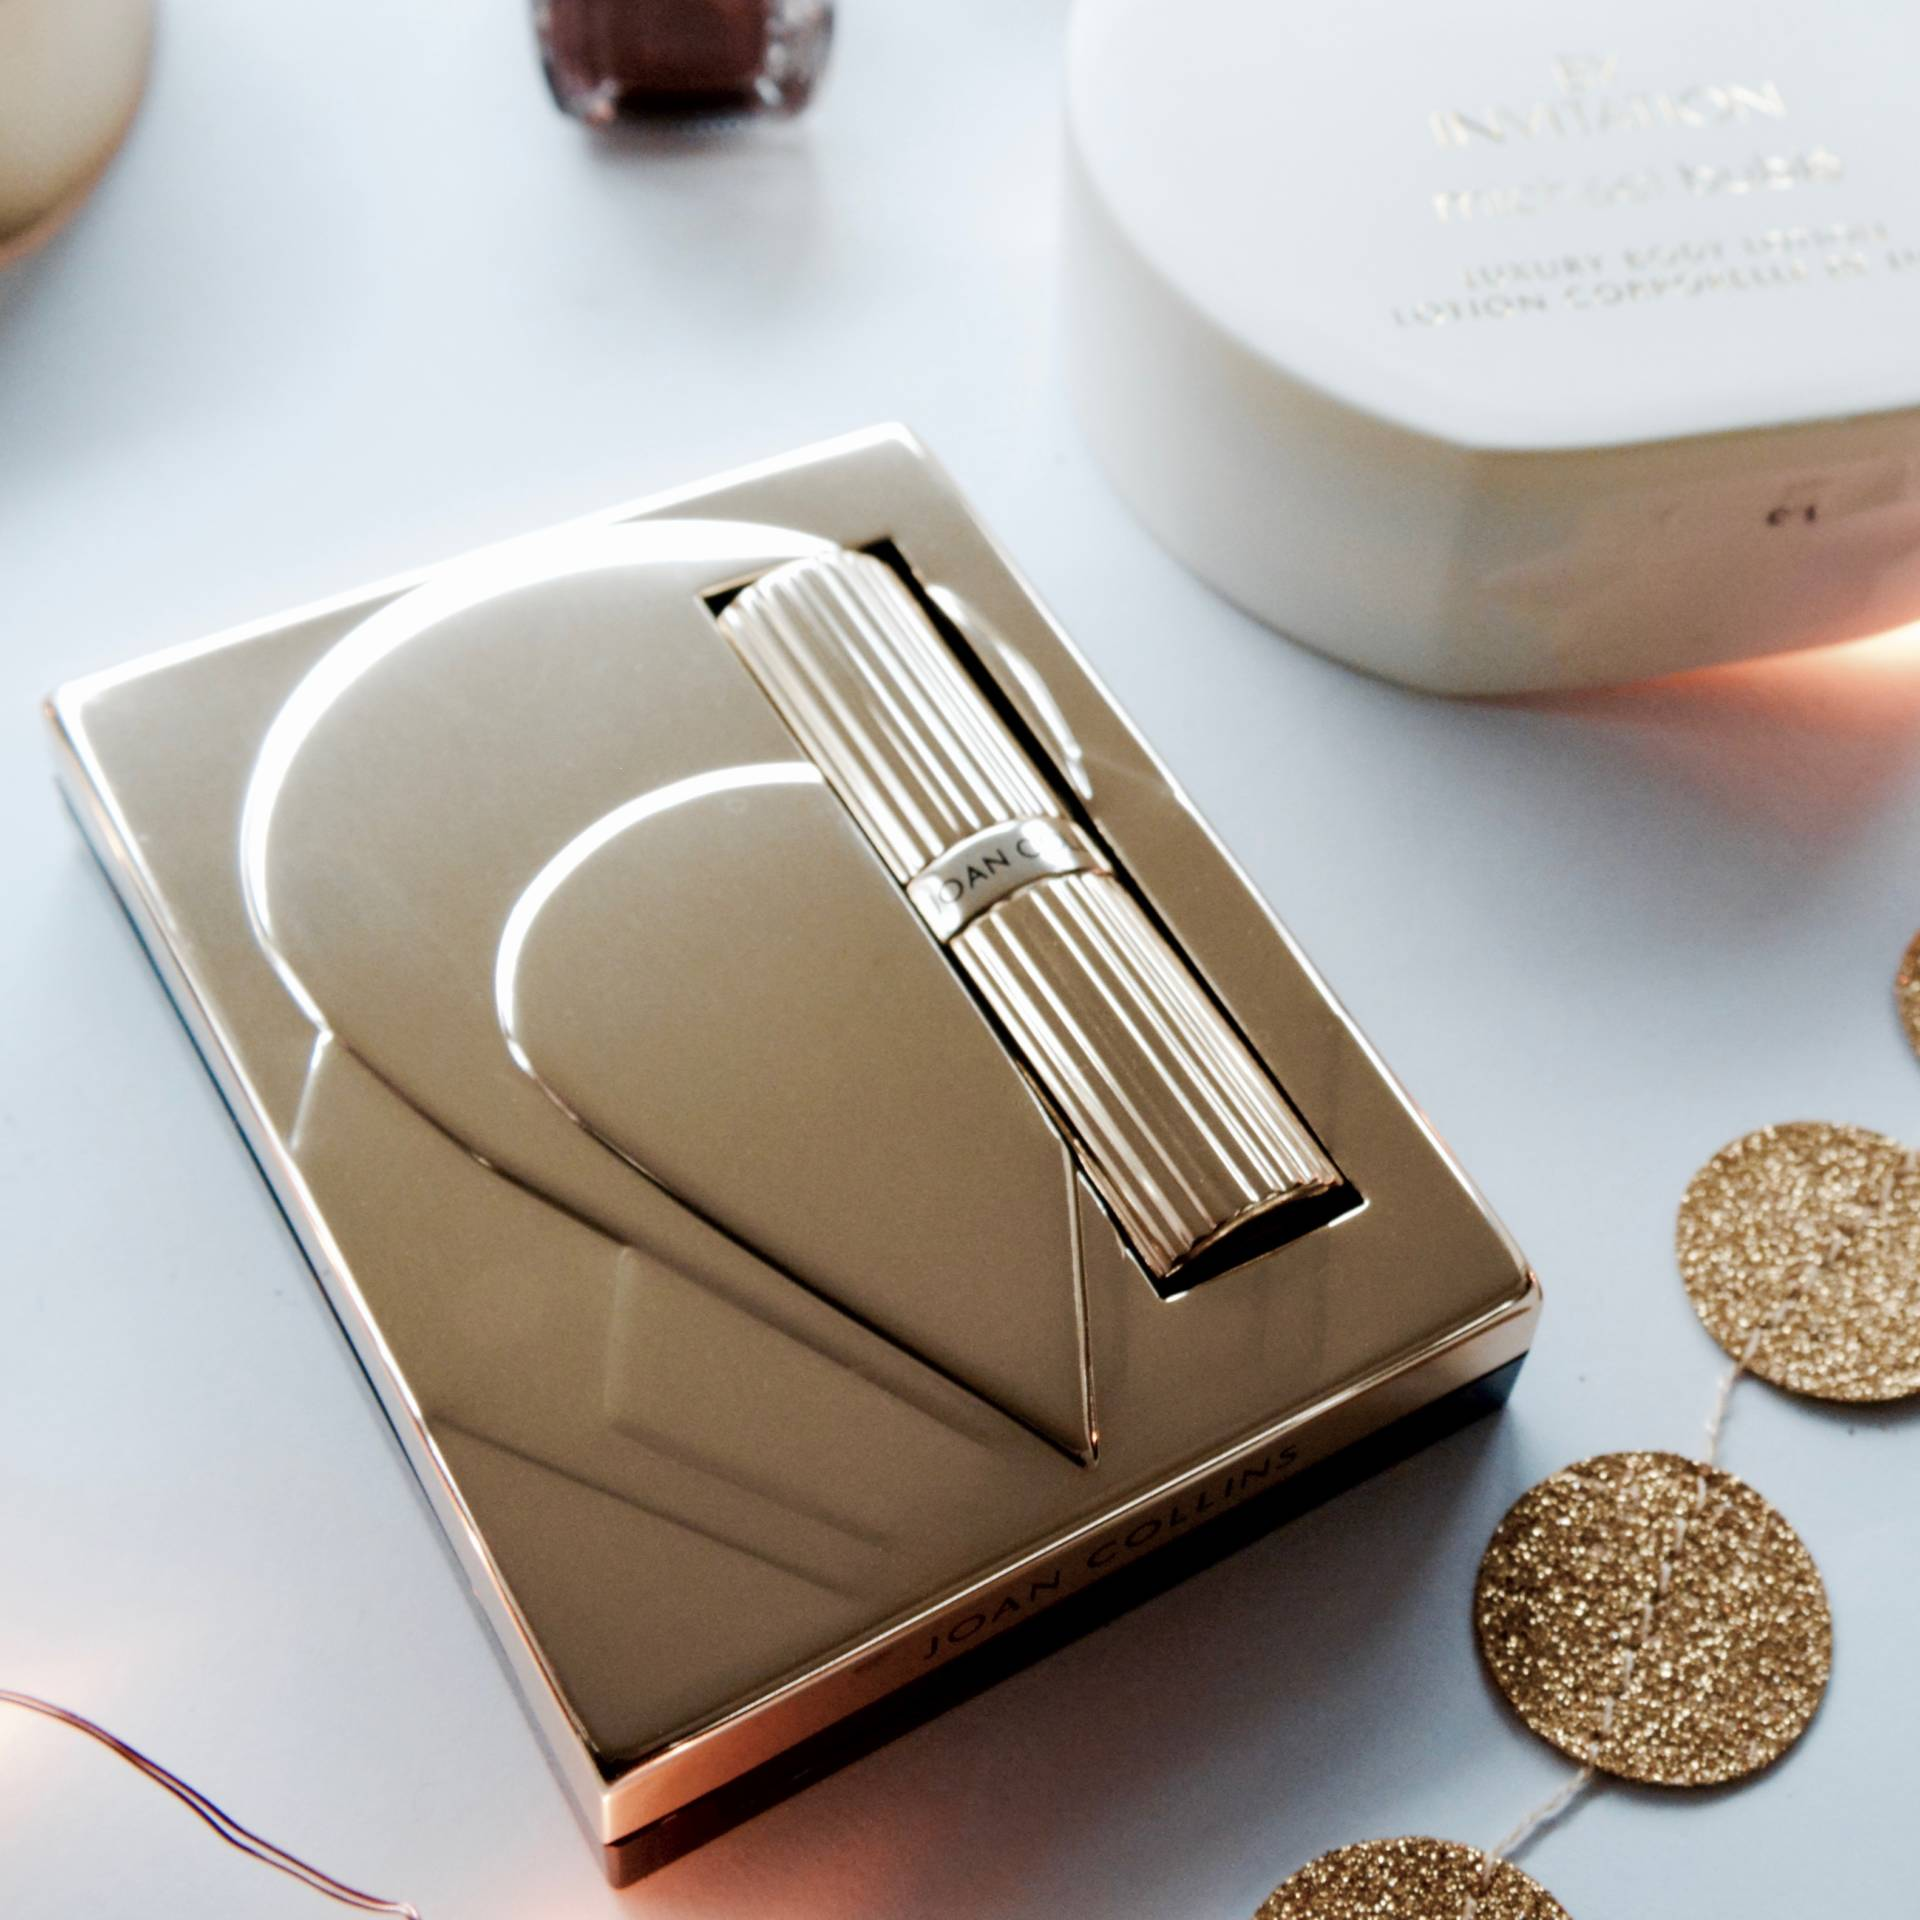 Last Minute Gift Guide: Joan Collins Timeless Beauty Compact Duo Lipstick & Powder